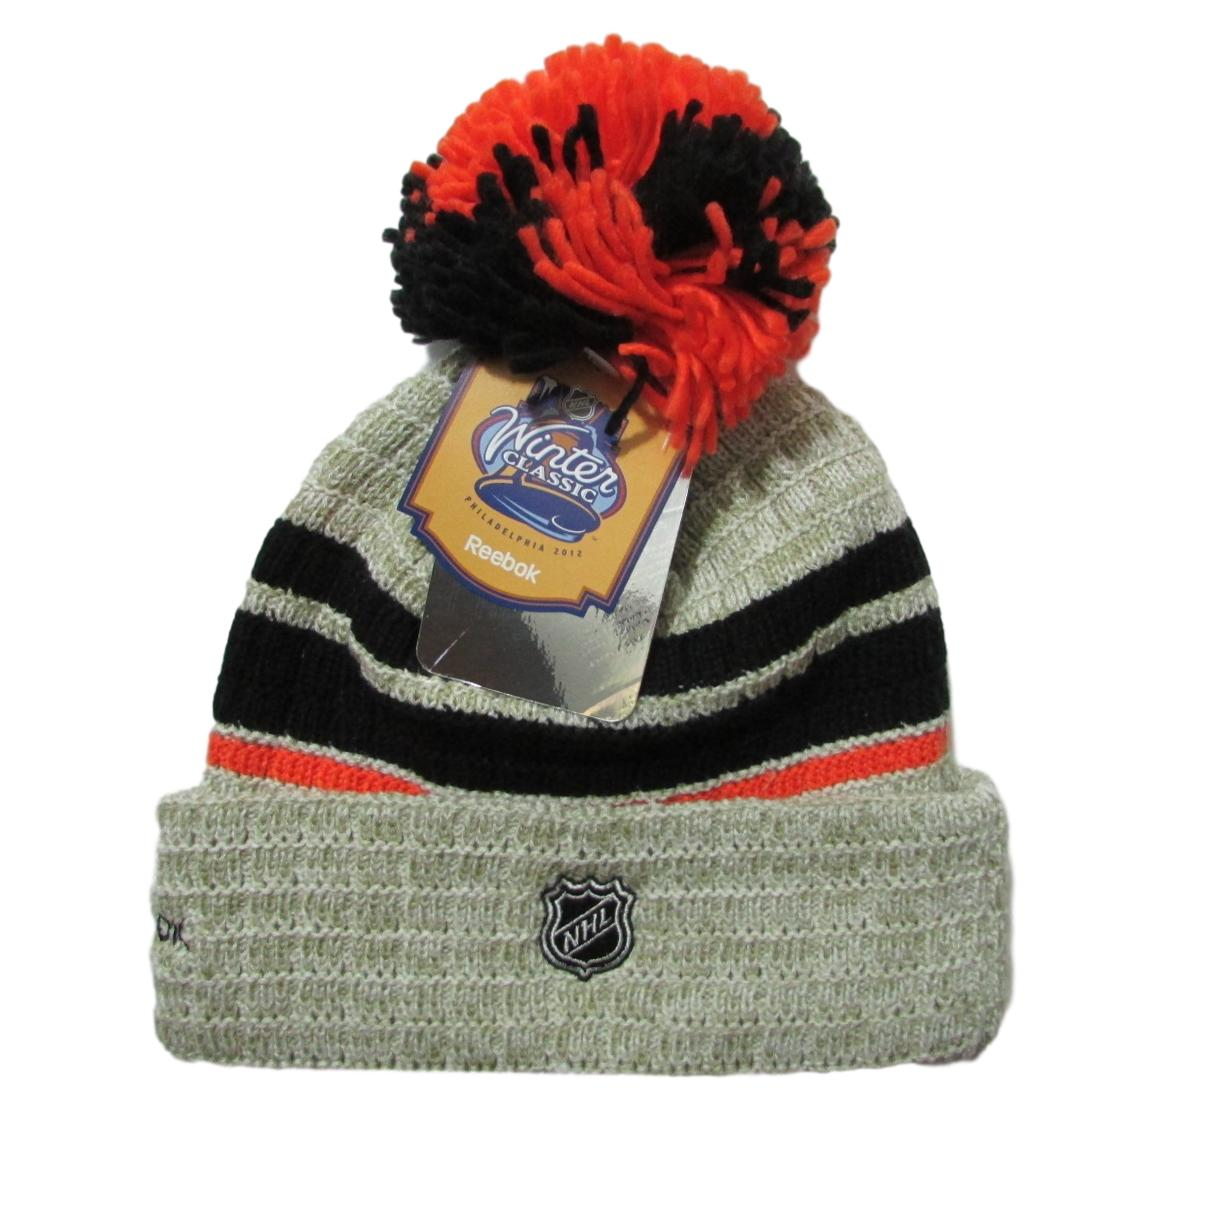 Philadelphia Flyers Winter Classic Hockey Pom Beanie